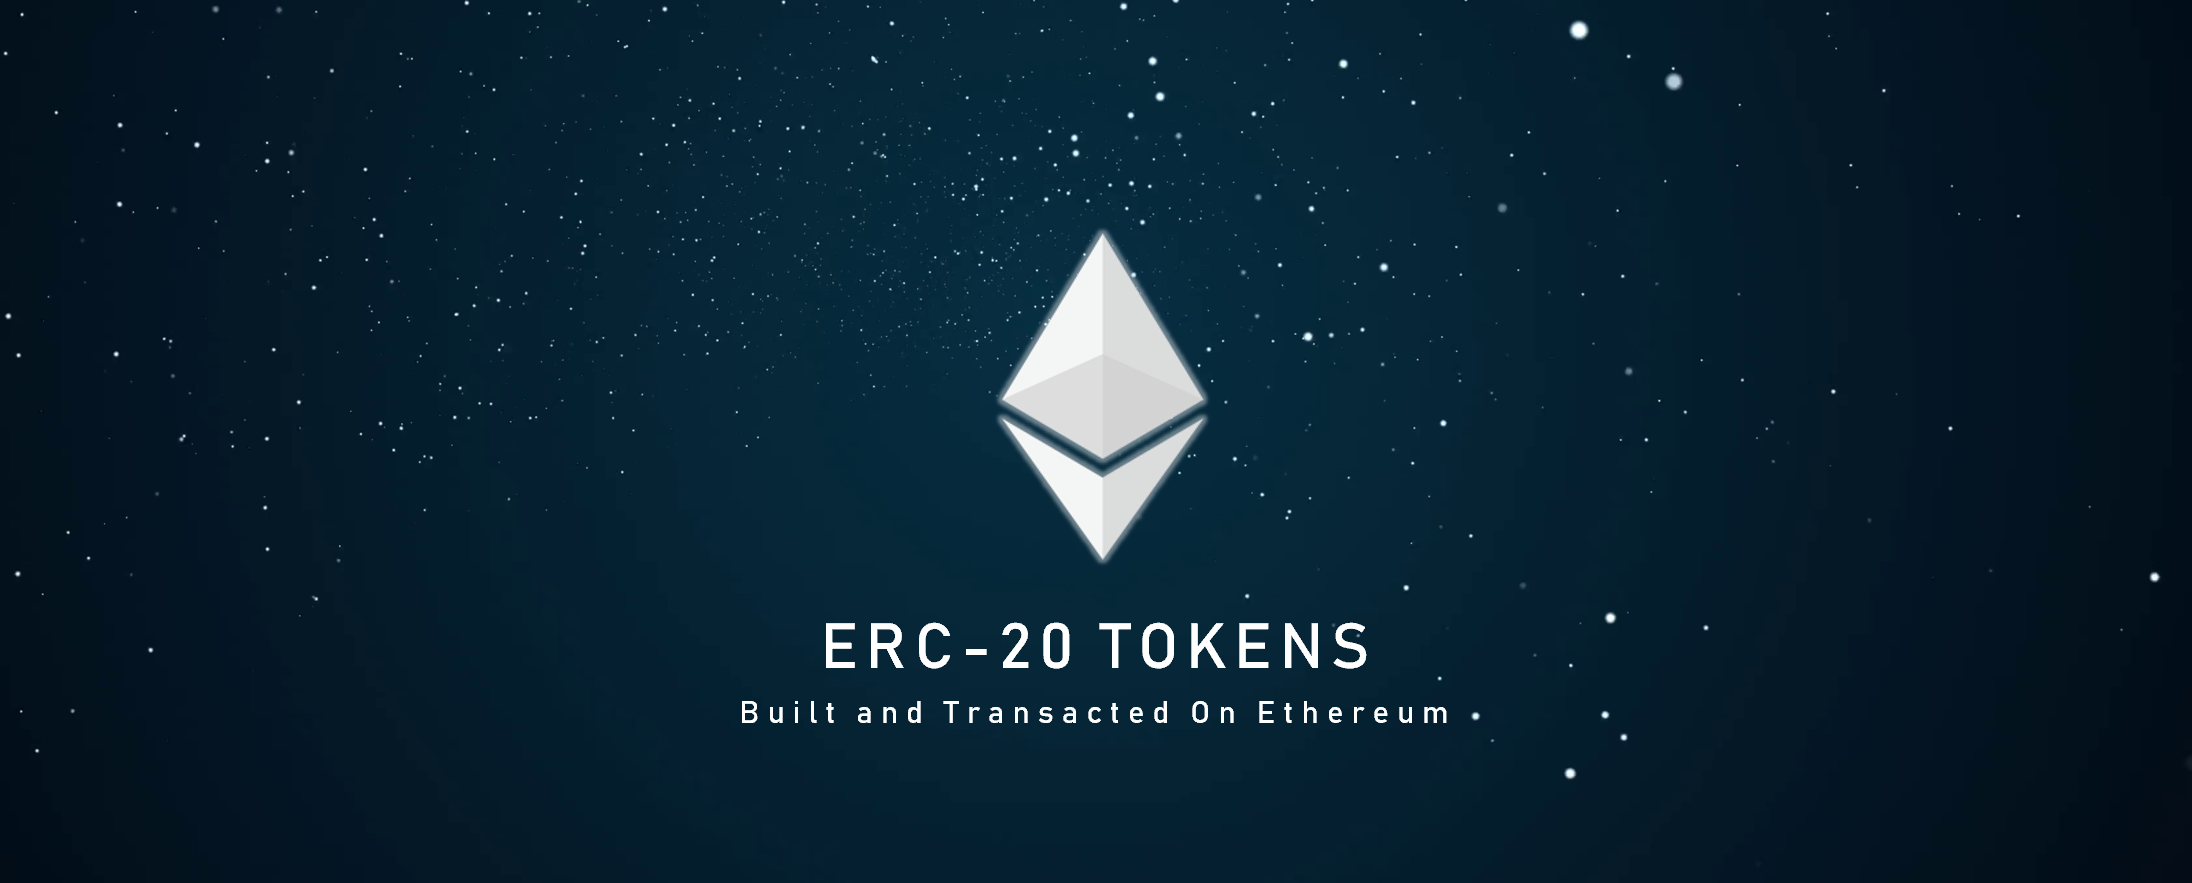 /ethereums-erc-20-tokens-explained-simply-88f5f8a7ae90 feature image